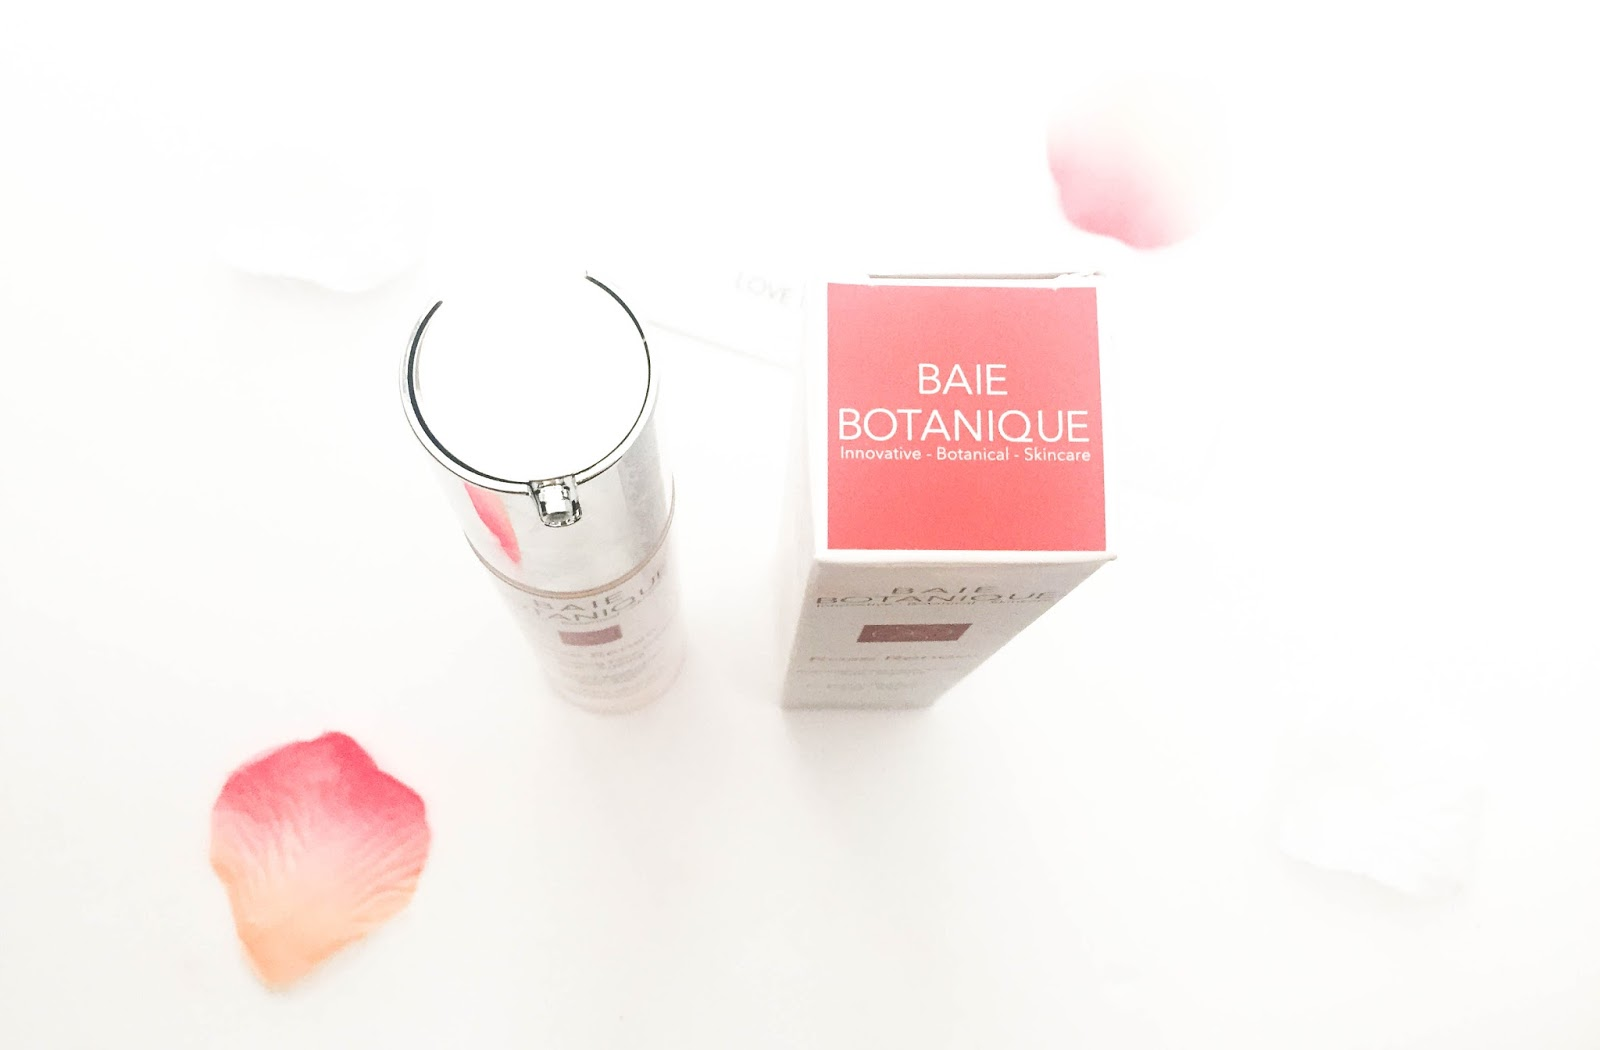 Baie Botanique Rose Renew Regenerating Face Cream Review